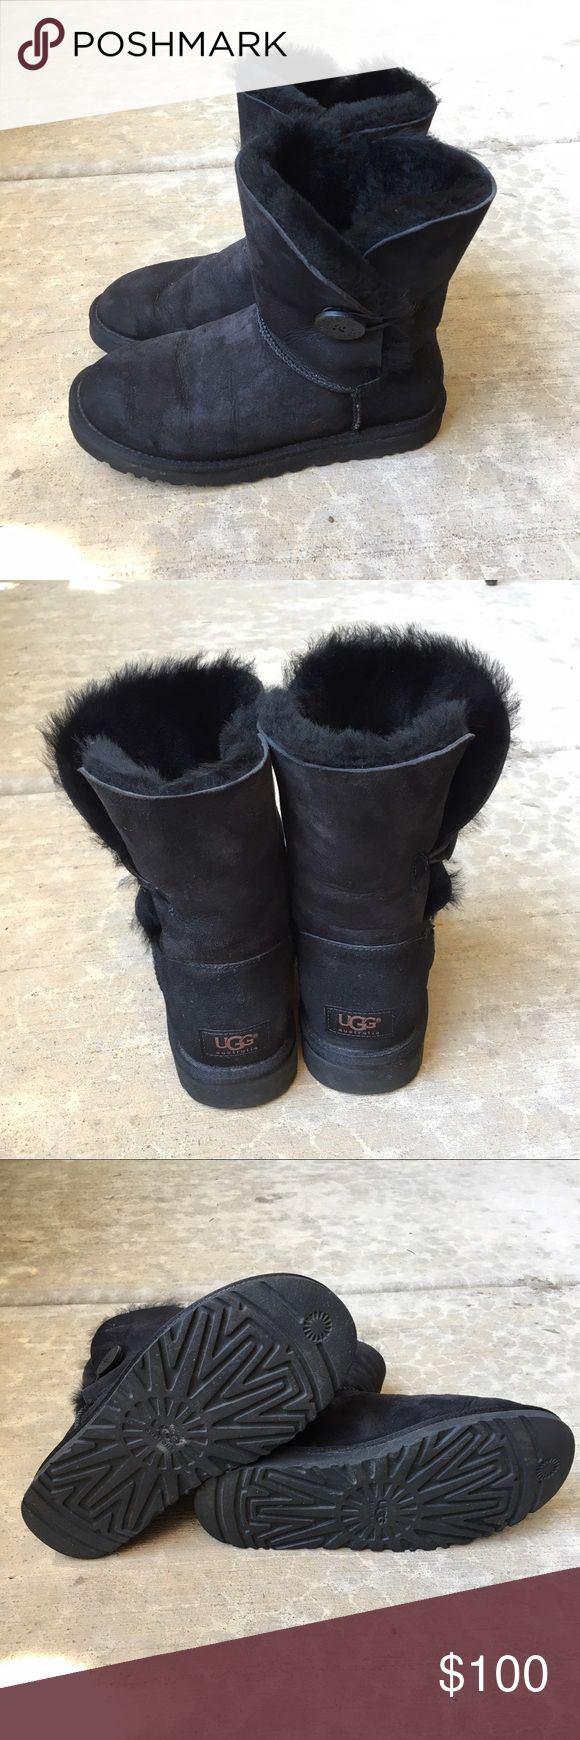 UGG Classic Cuff Short Boots UGG Classic Cuff Short boots in black women size 7. These have only been worn once. Show little to no wear, in amazing condition! Make an offer or bundle to save. UGG Shoes Winter & Rain Boots